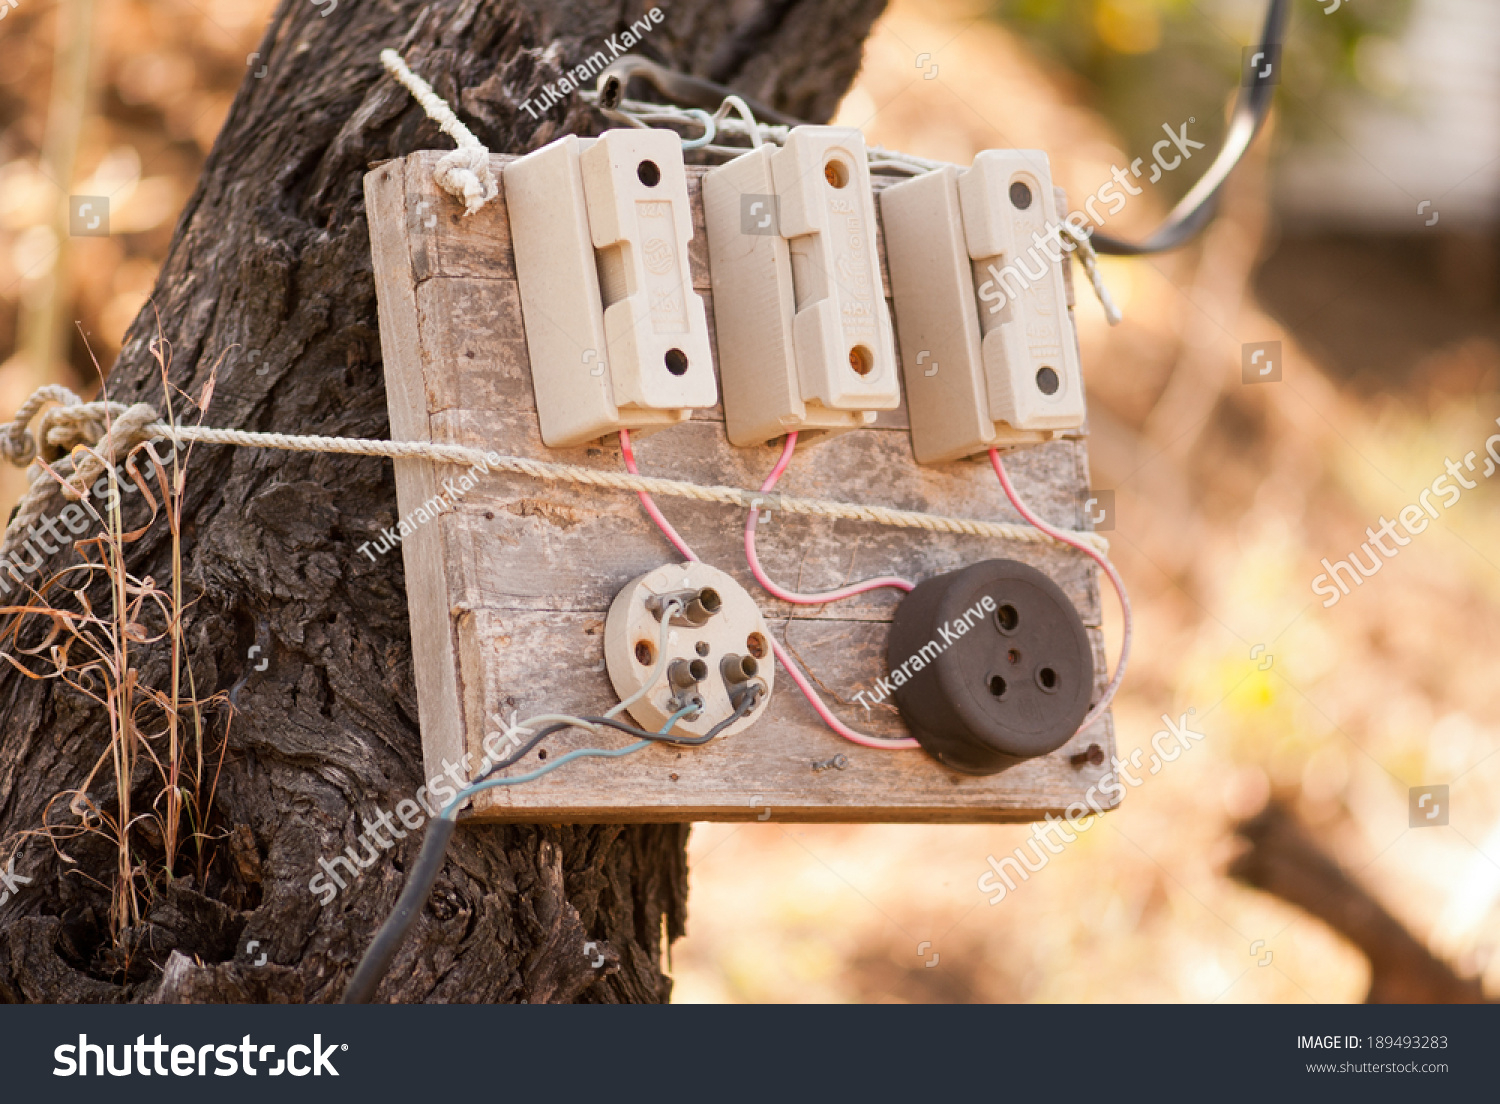 hight resolution of old electric fuse box on tree maharashtra india south east asia